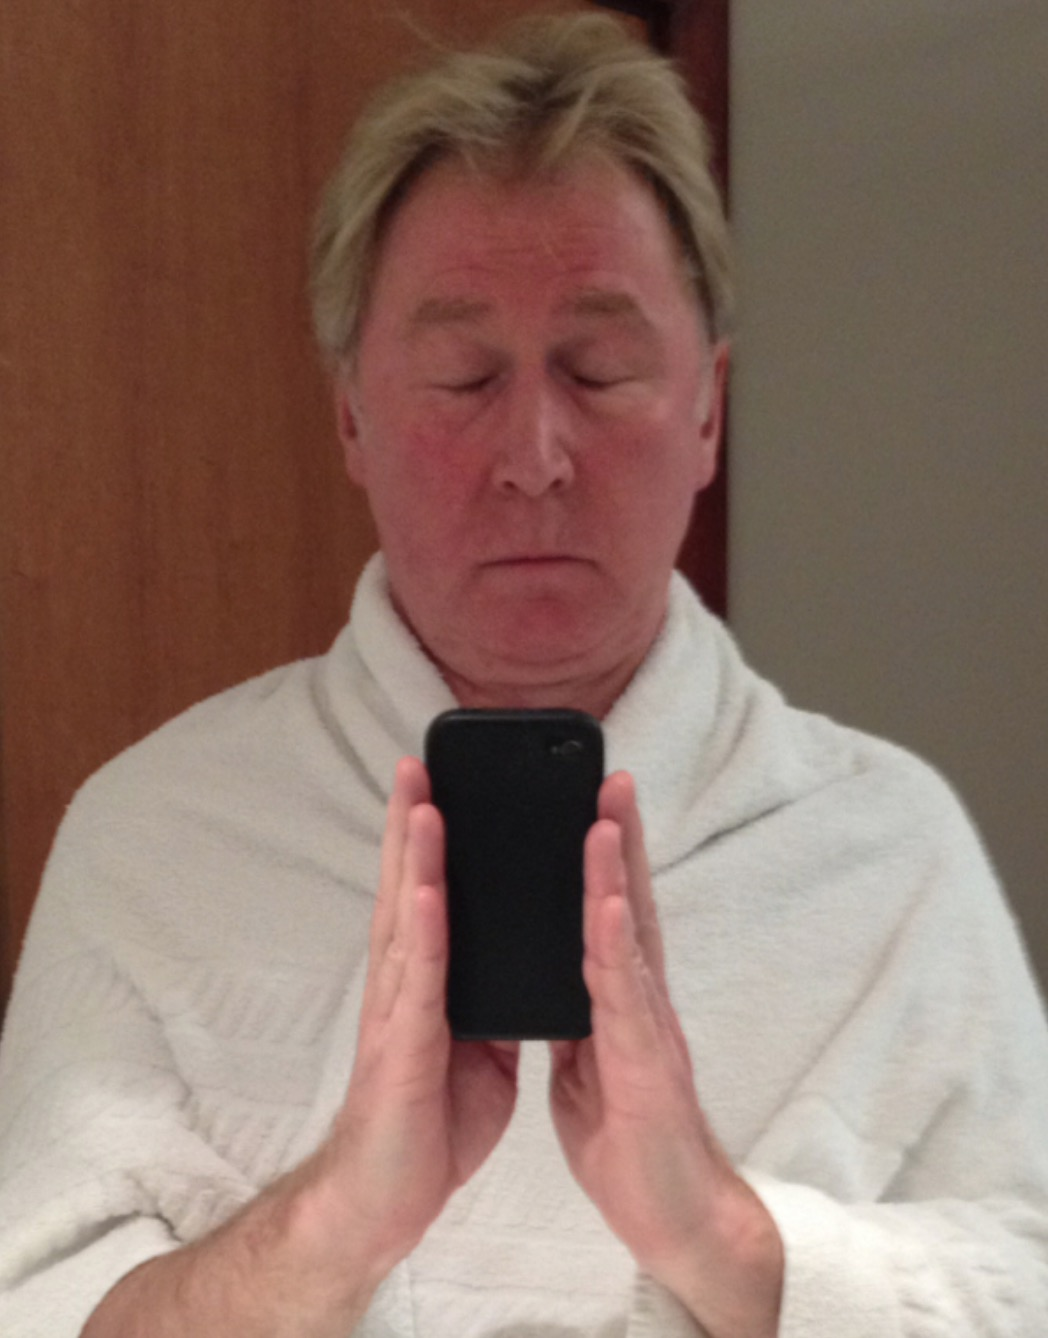 A selfie by the author taken in a bathroom mirror.  He stands holding the iPhone camera as if his hands are praying.  A white towel draps across his shoulders and his eyes are shut in contemplation